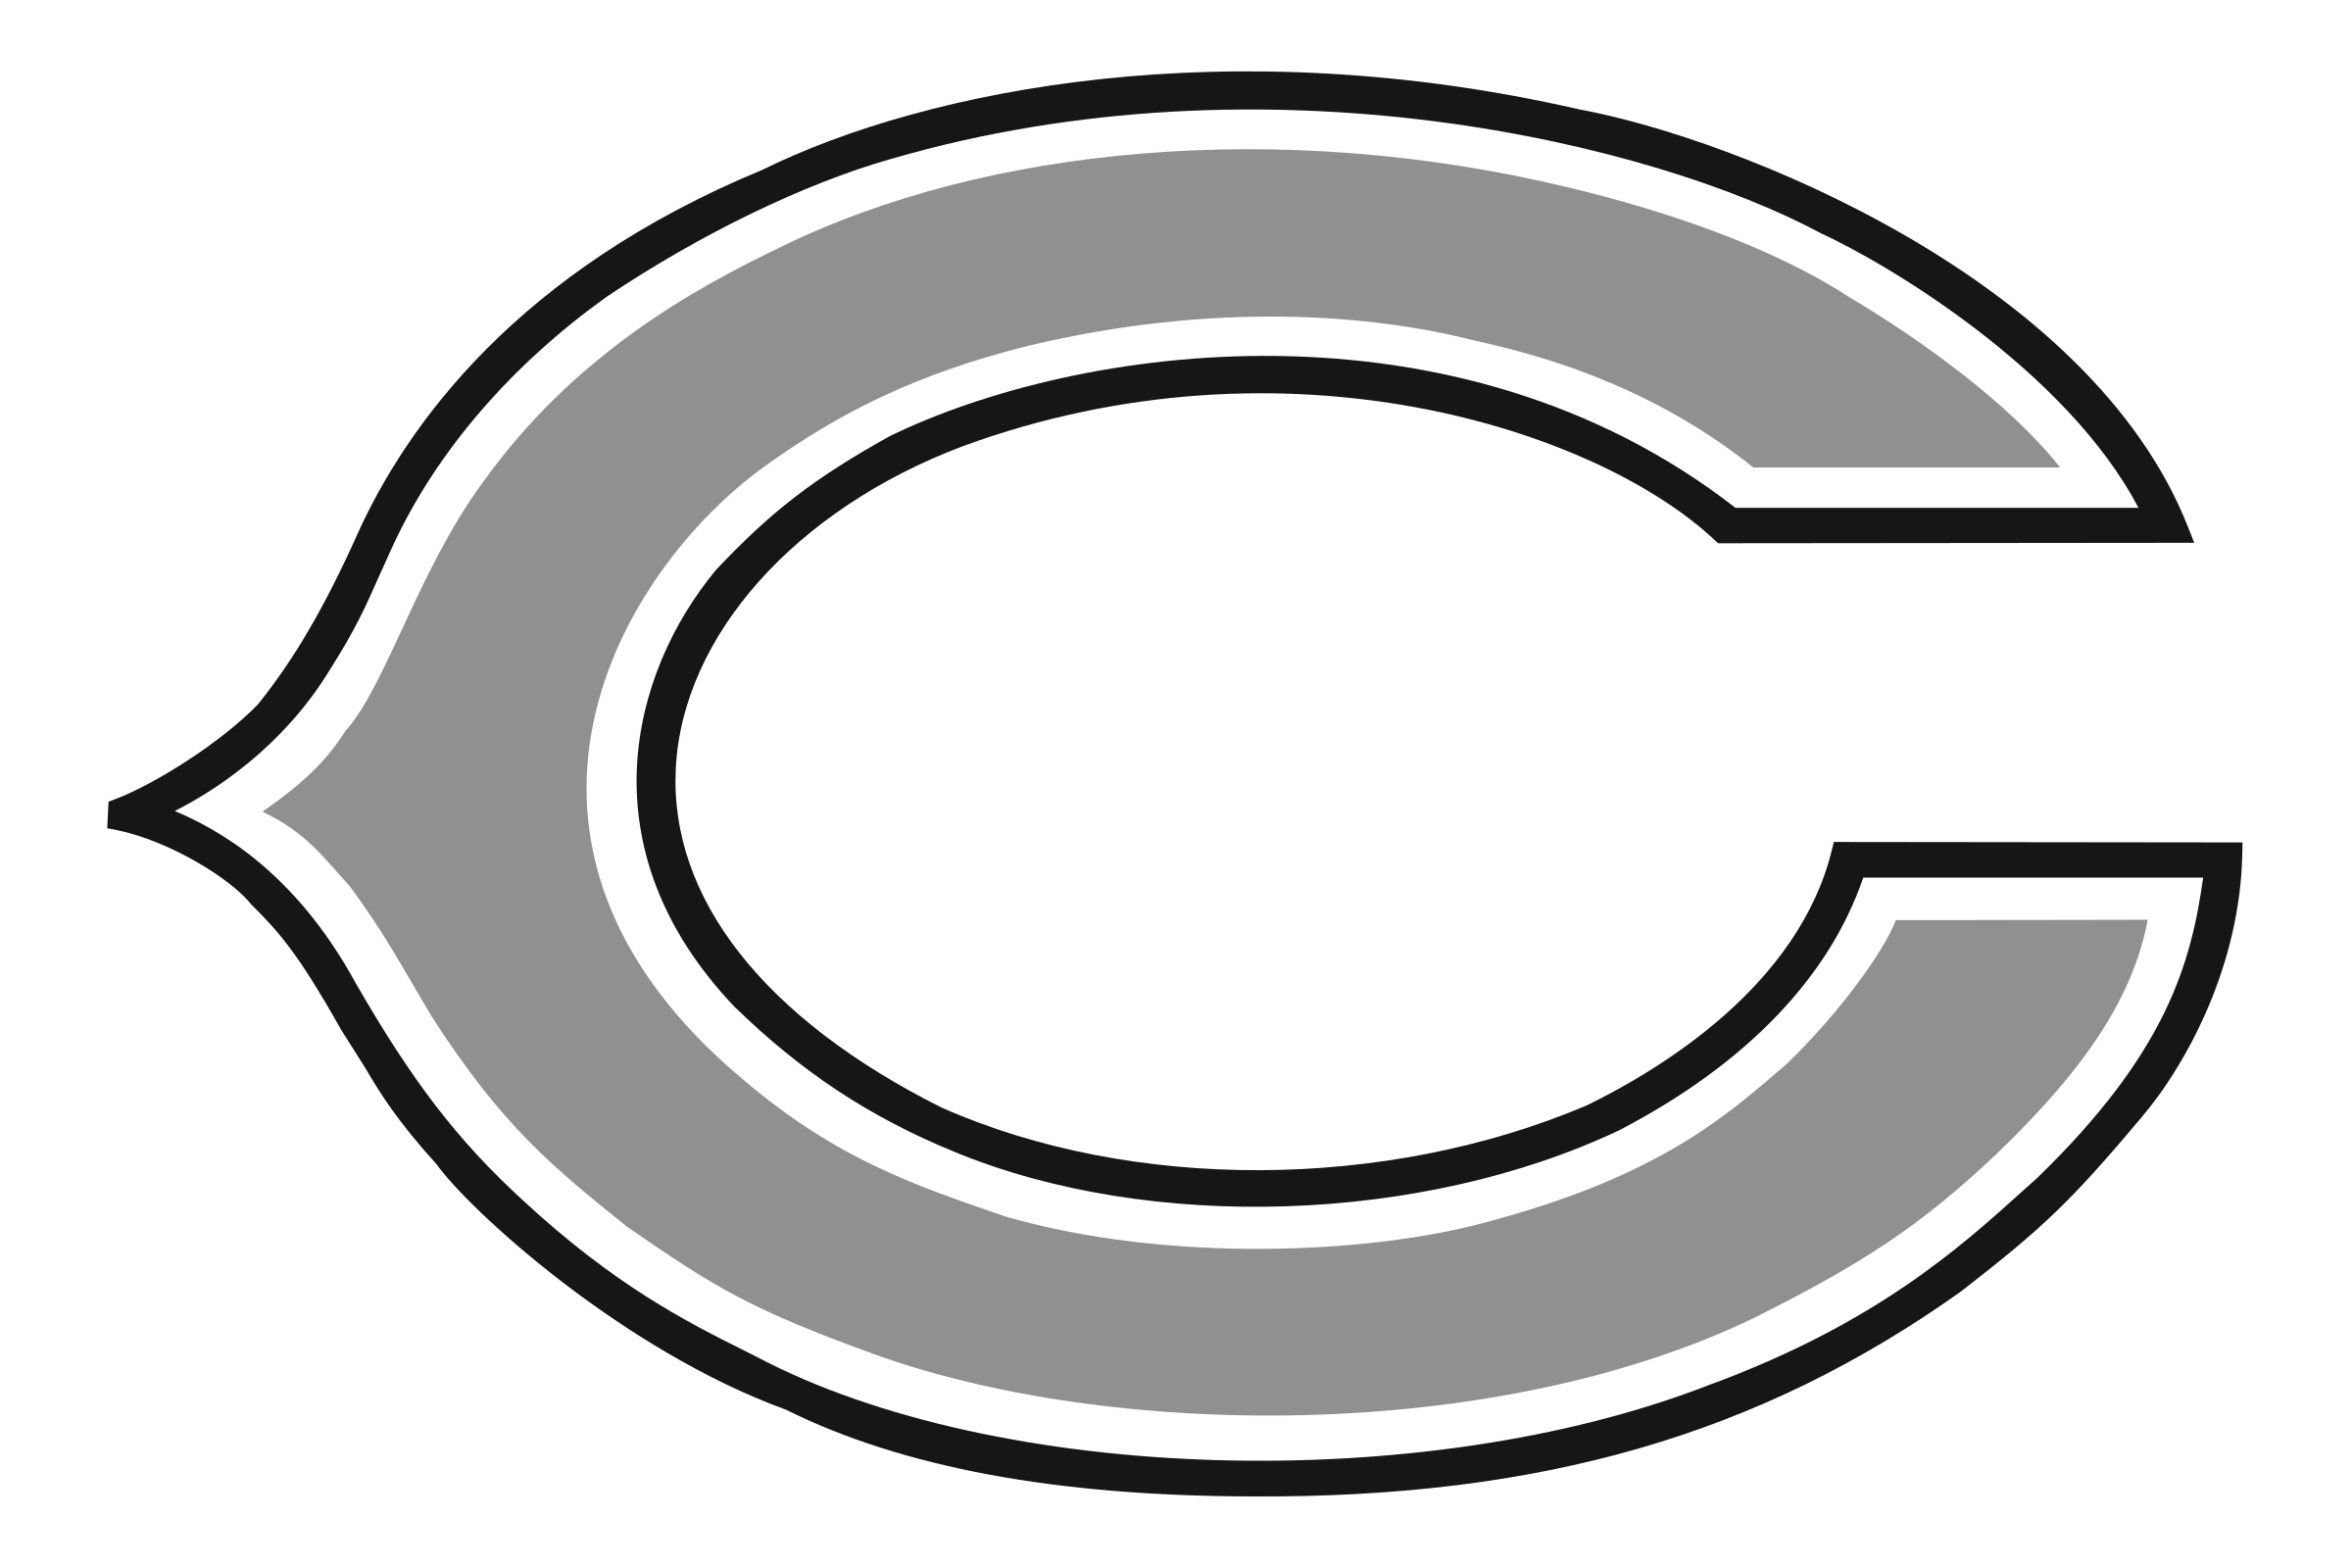 Pictures of the chicago bears logo